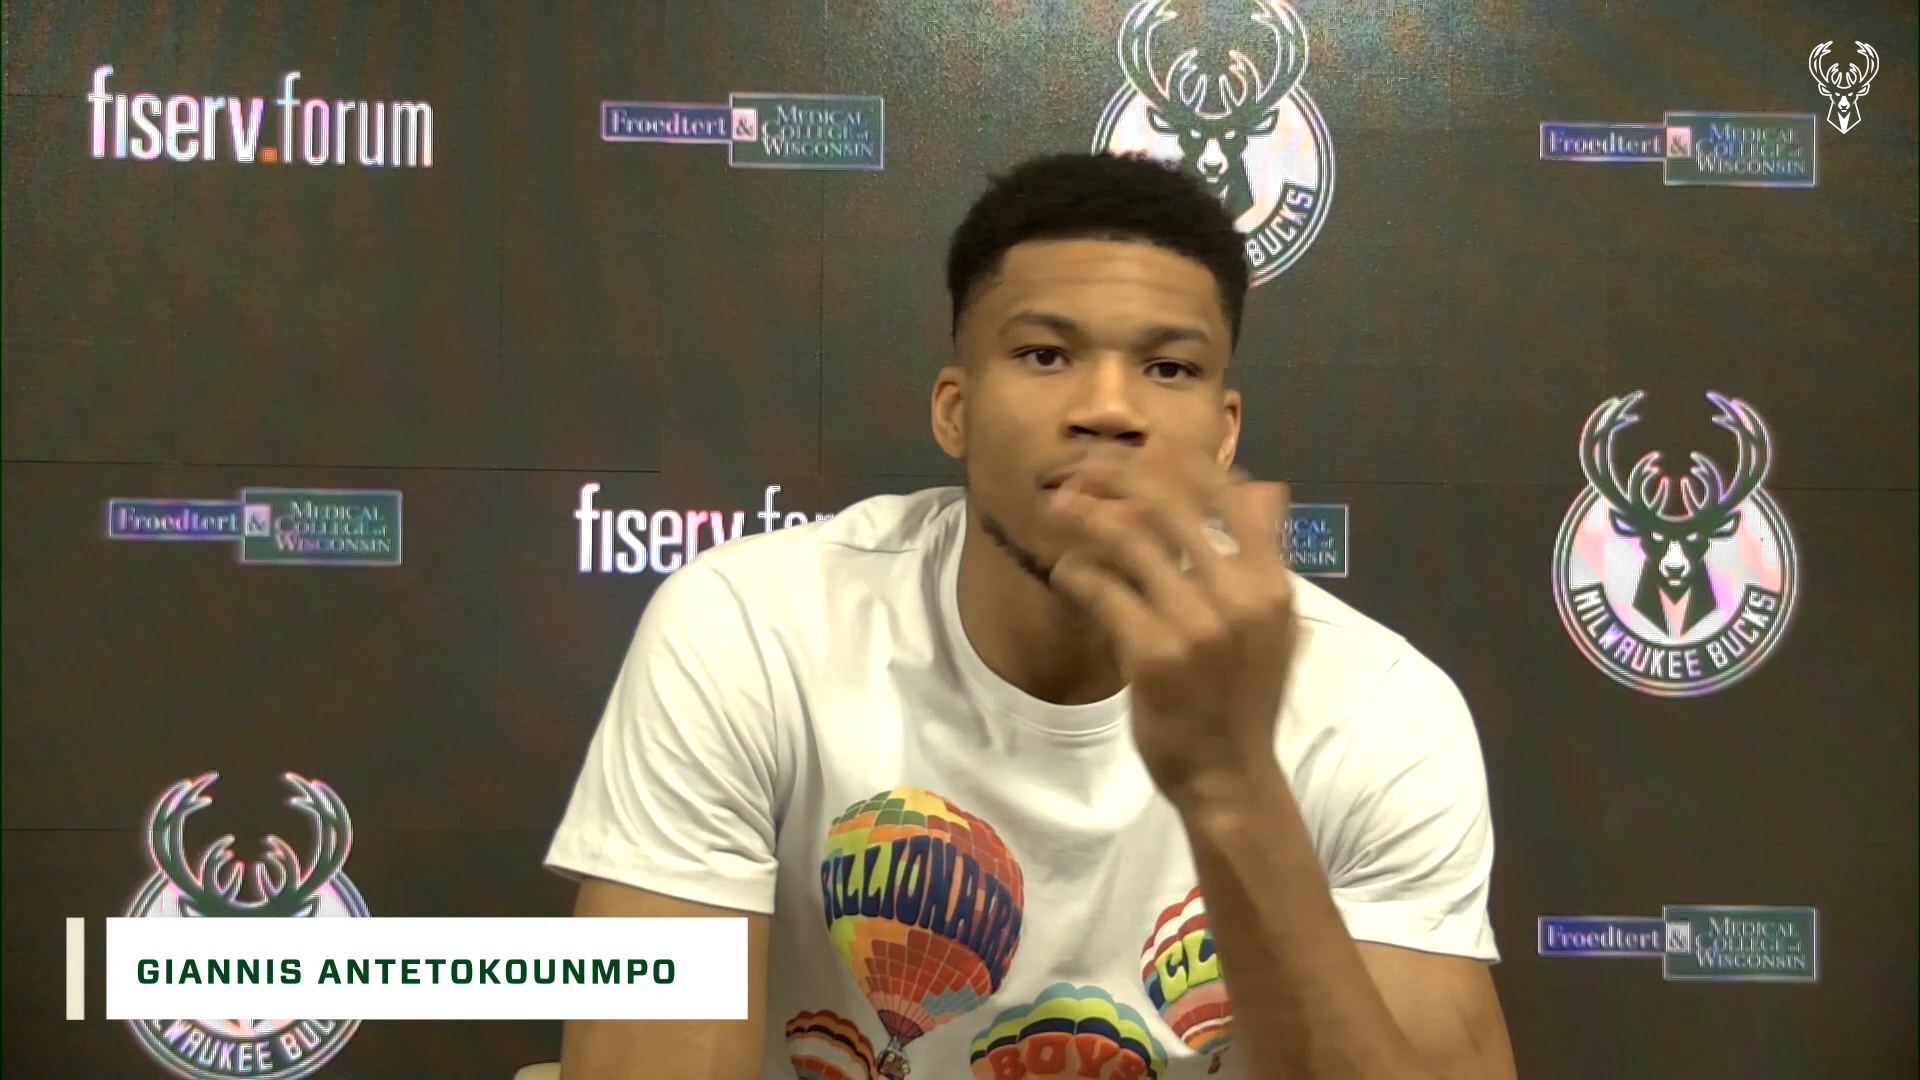 Giannis Antetokounmpo Press Conference | 3.2.21